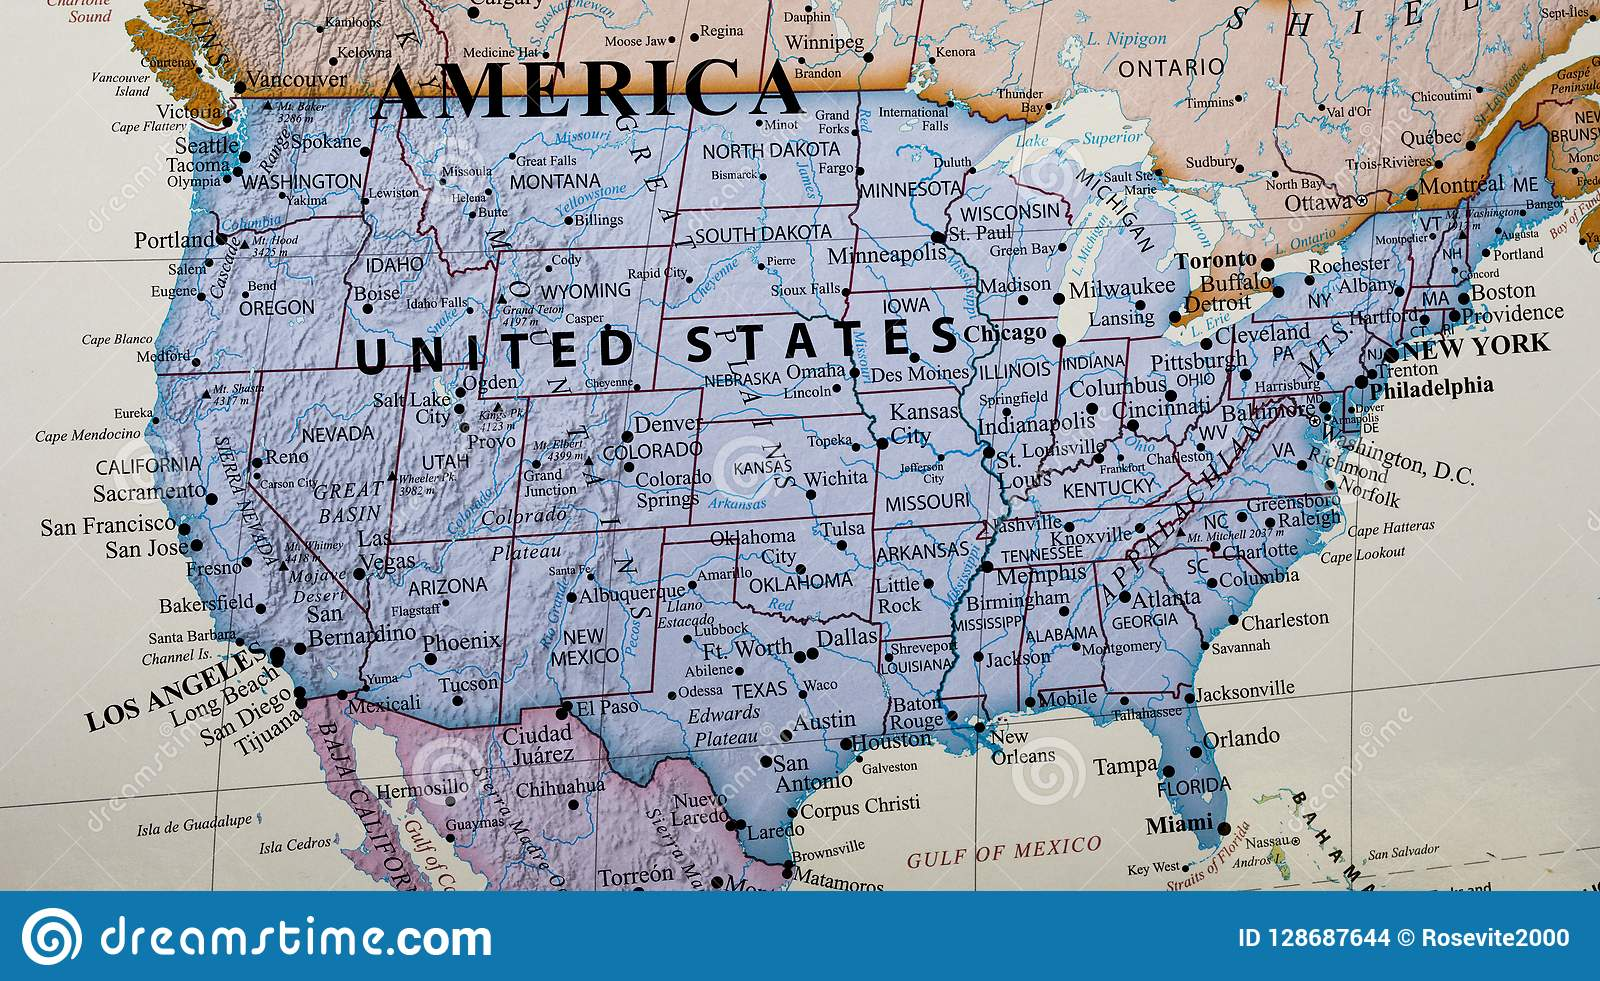 Map Of United States Of America Stock Photo - Image of bright ... Image Of Us Highlighting Hawaii Map on detailed map of hawaii, state map of hawaii, us map guam, us map ma, us map honolulu, us map showing hawaii, county map of hawaii, world map of hawaii, us map new zealand, street maps of hawaii, marijuana of hawaii, us states map with hawaii, downloadable map of hawaii,